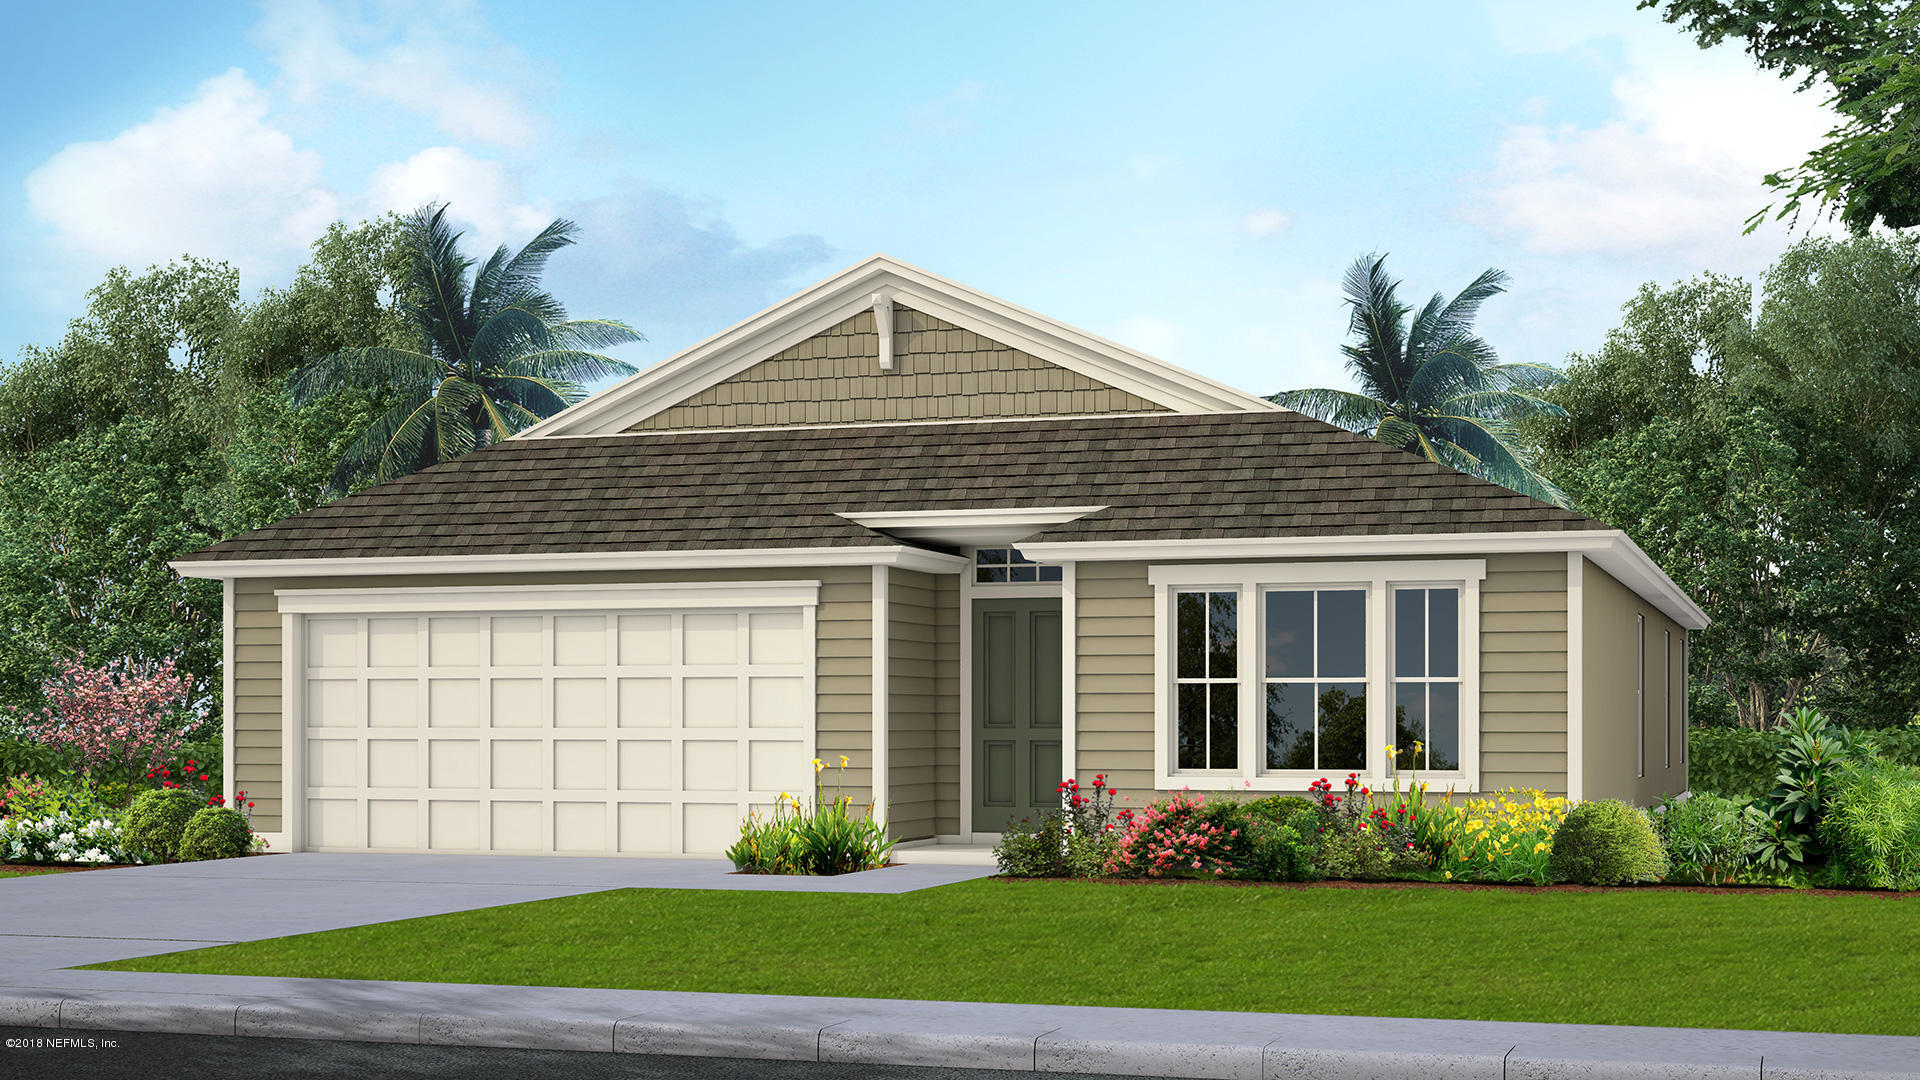 10160 BENGAL FOX, JACKSONVILLE, FLORIDA 32222, 4 Bedrooms Bedrooms, ,2 BathroomsBathrooms,Residential - single family,For sale,BENGAL FOX,945543